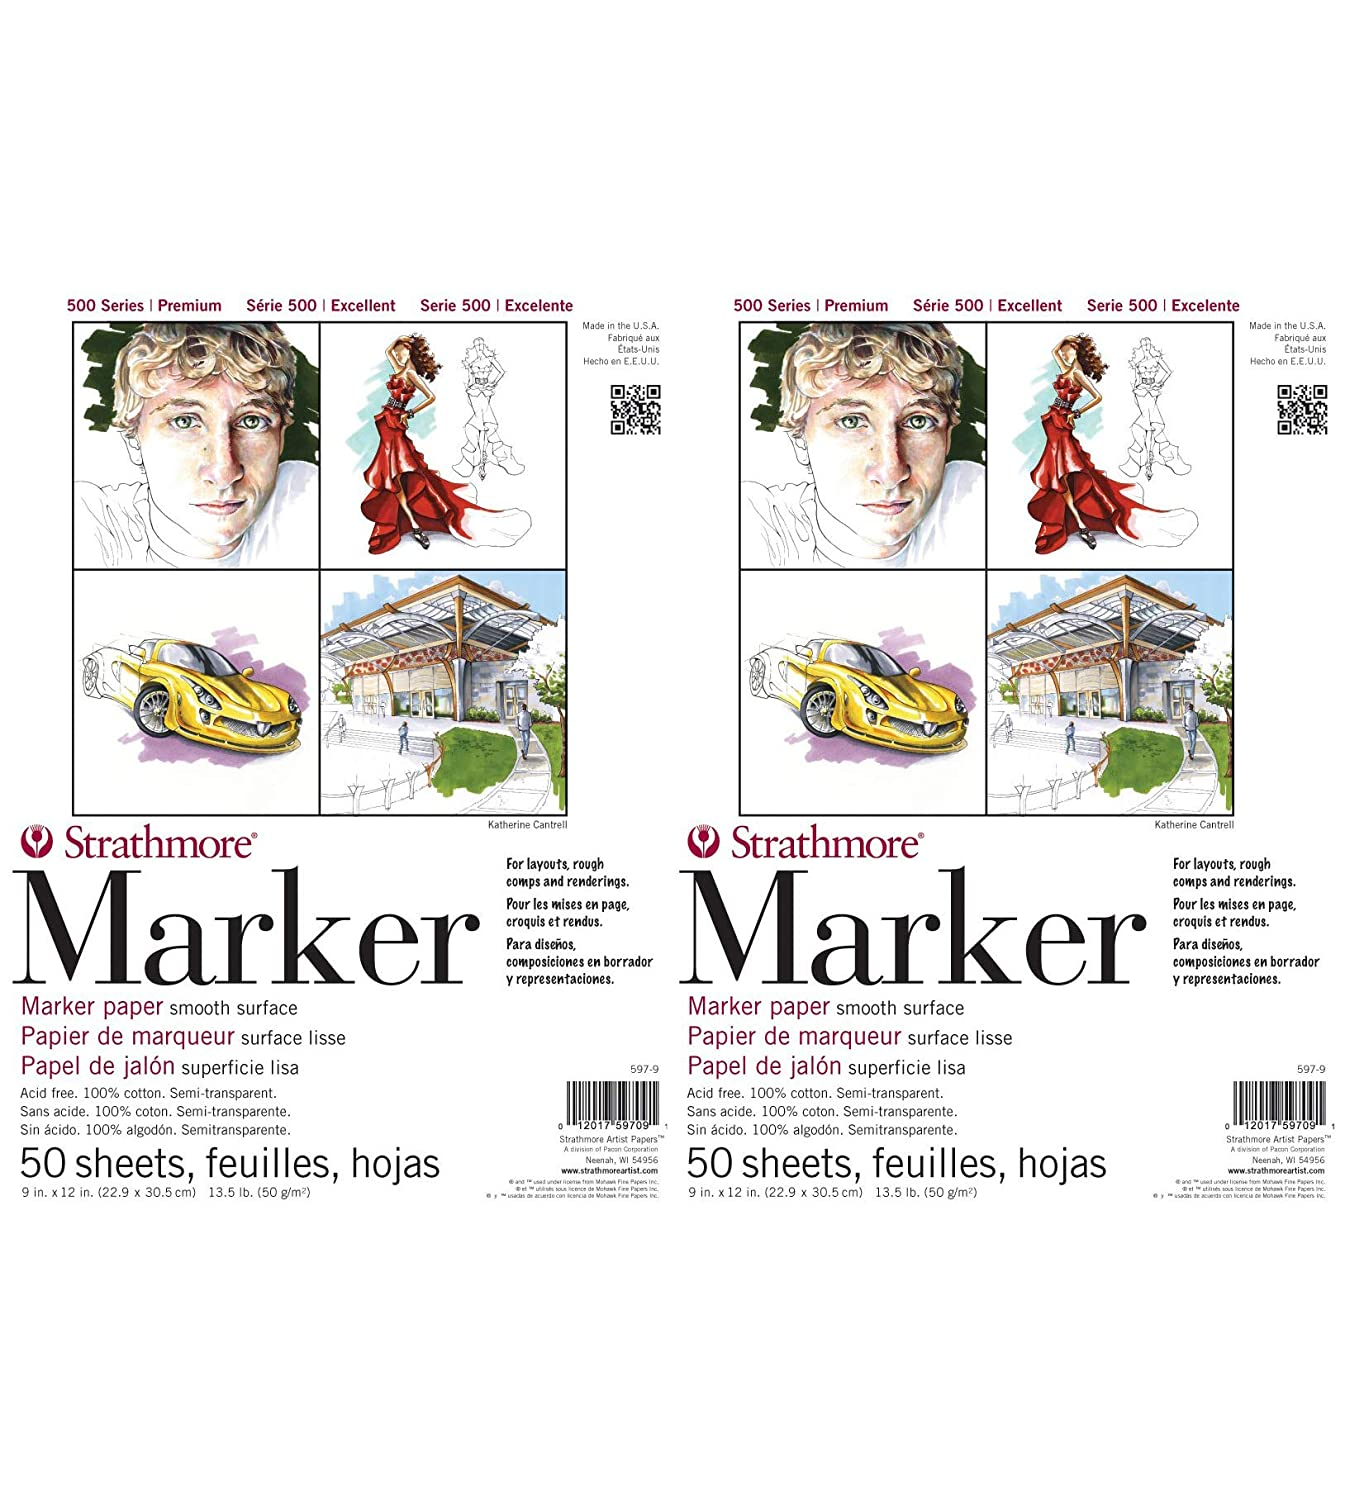 597-9 500 Series Marker Pad, 9x12, 50 Sheets Strathmore